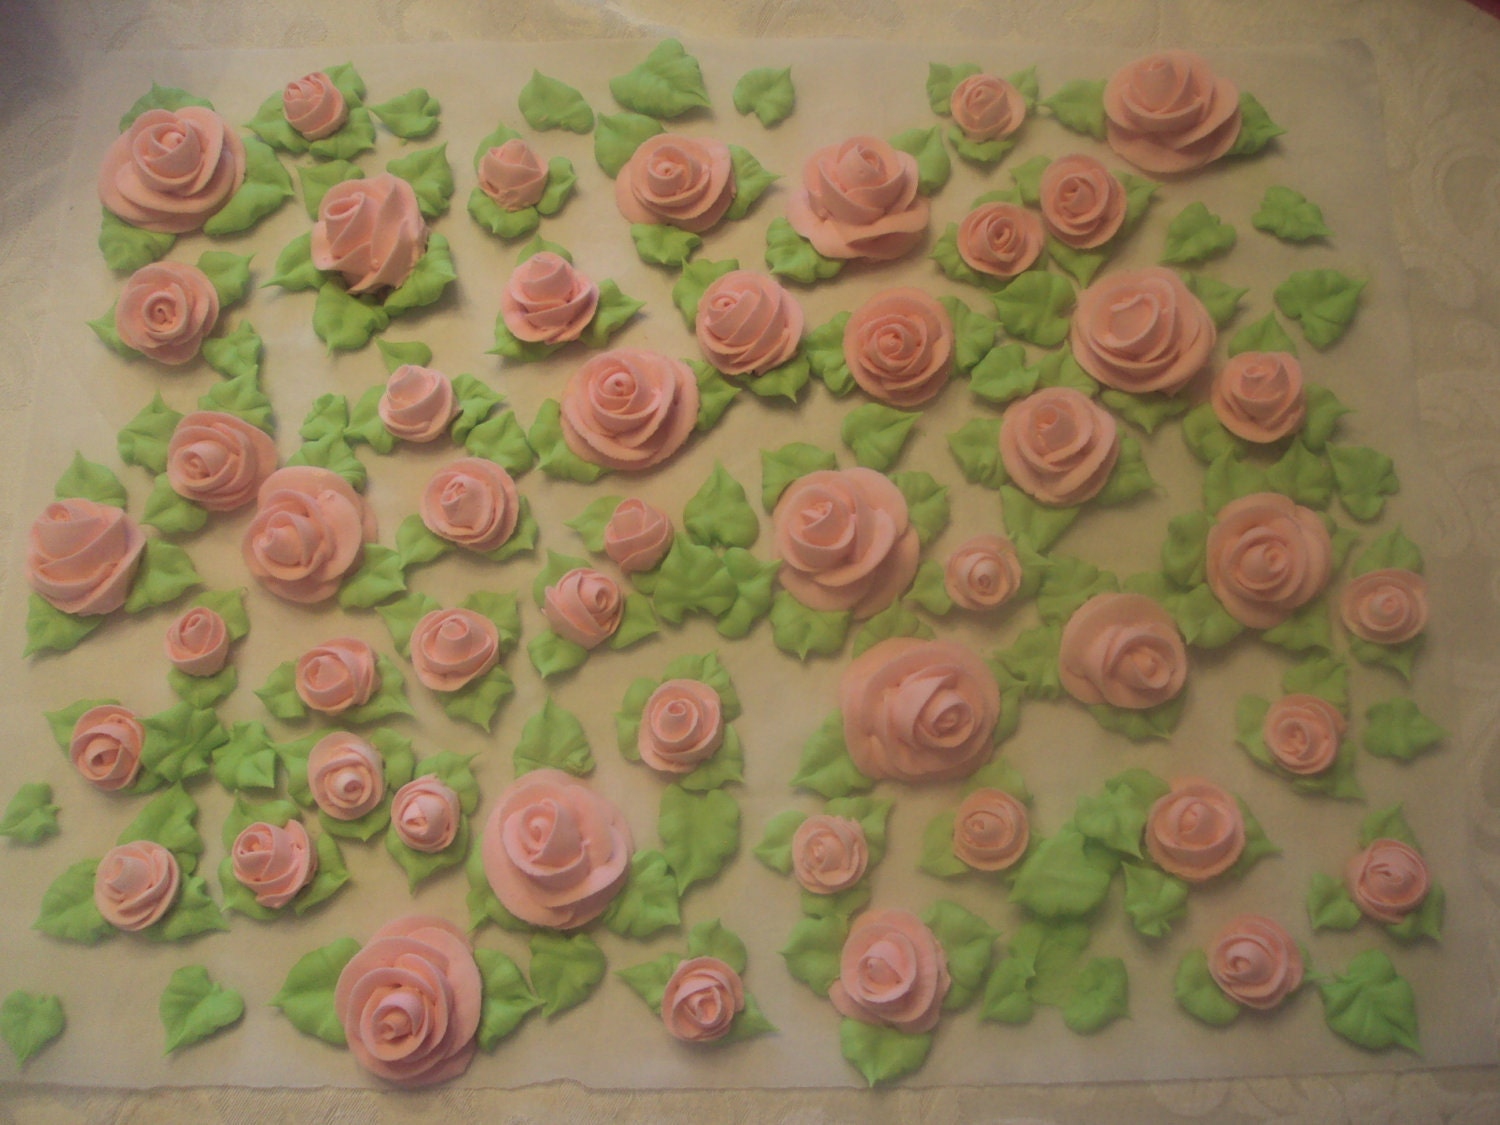 Cake Decorating Pre Made Icing : Premade Flowers ROYAL ICING ROSES For Cake by ...